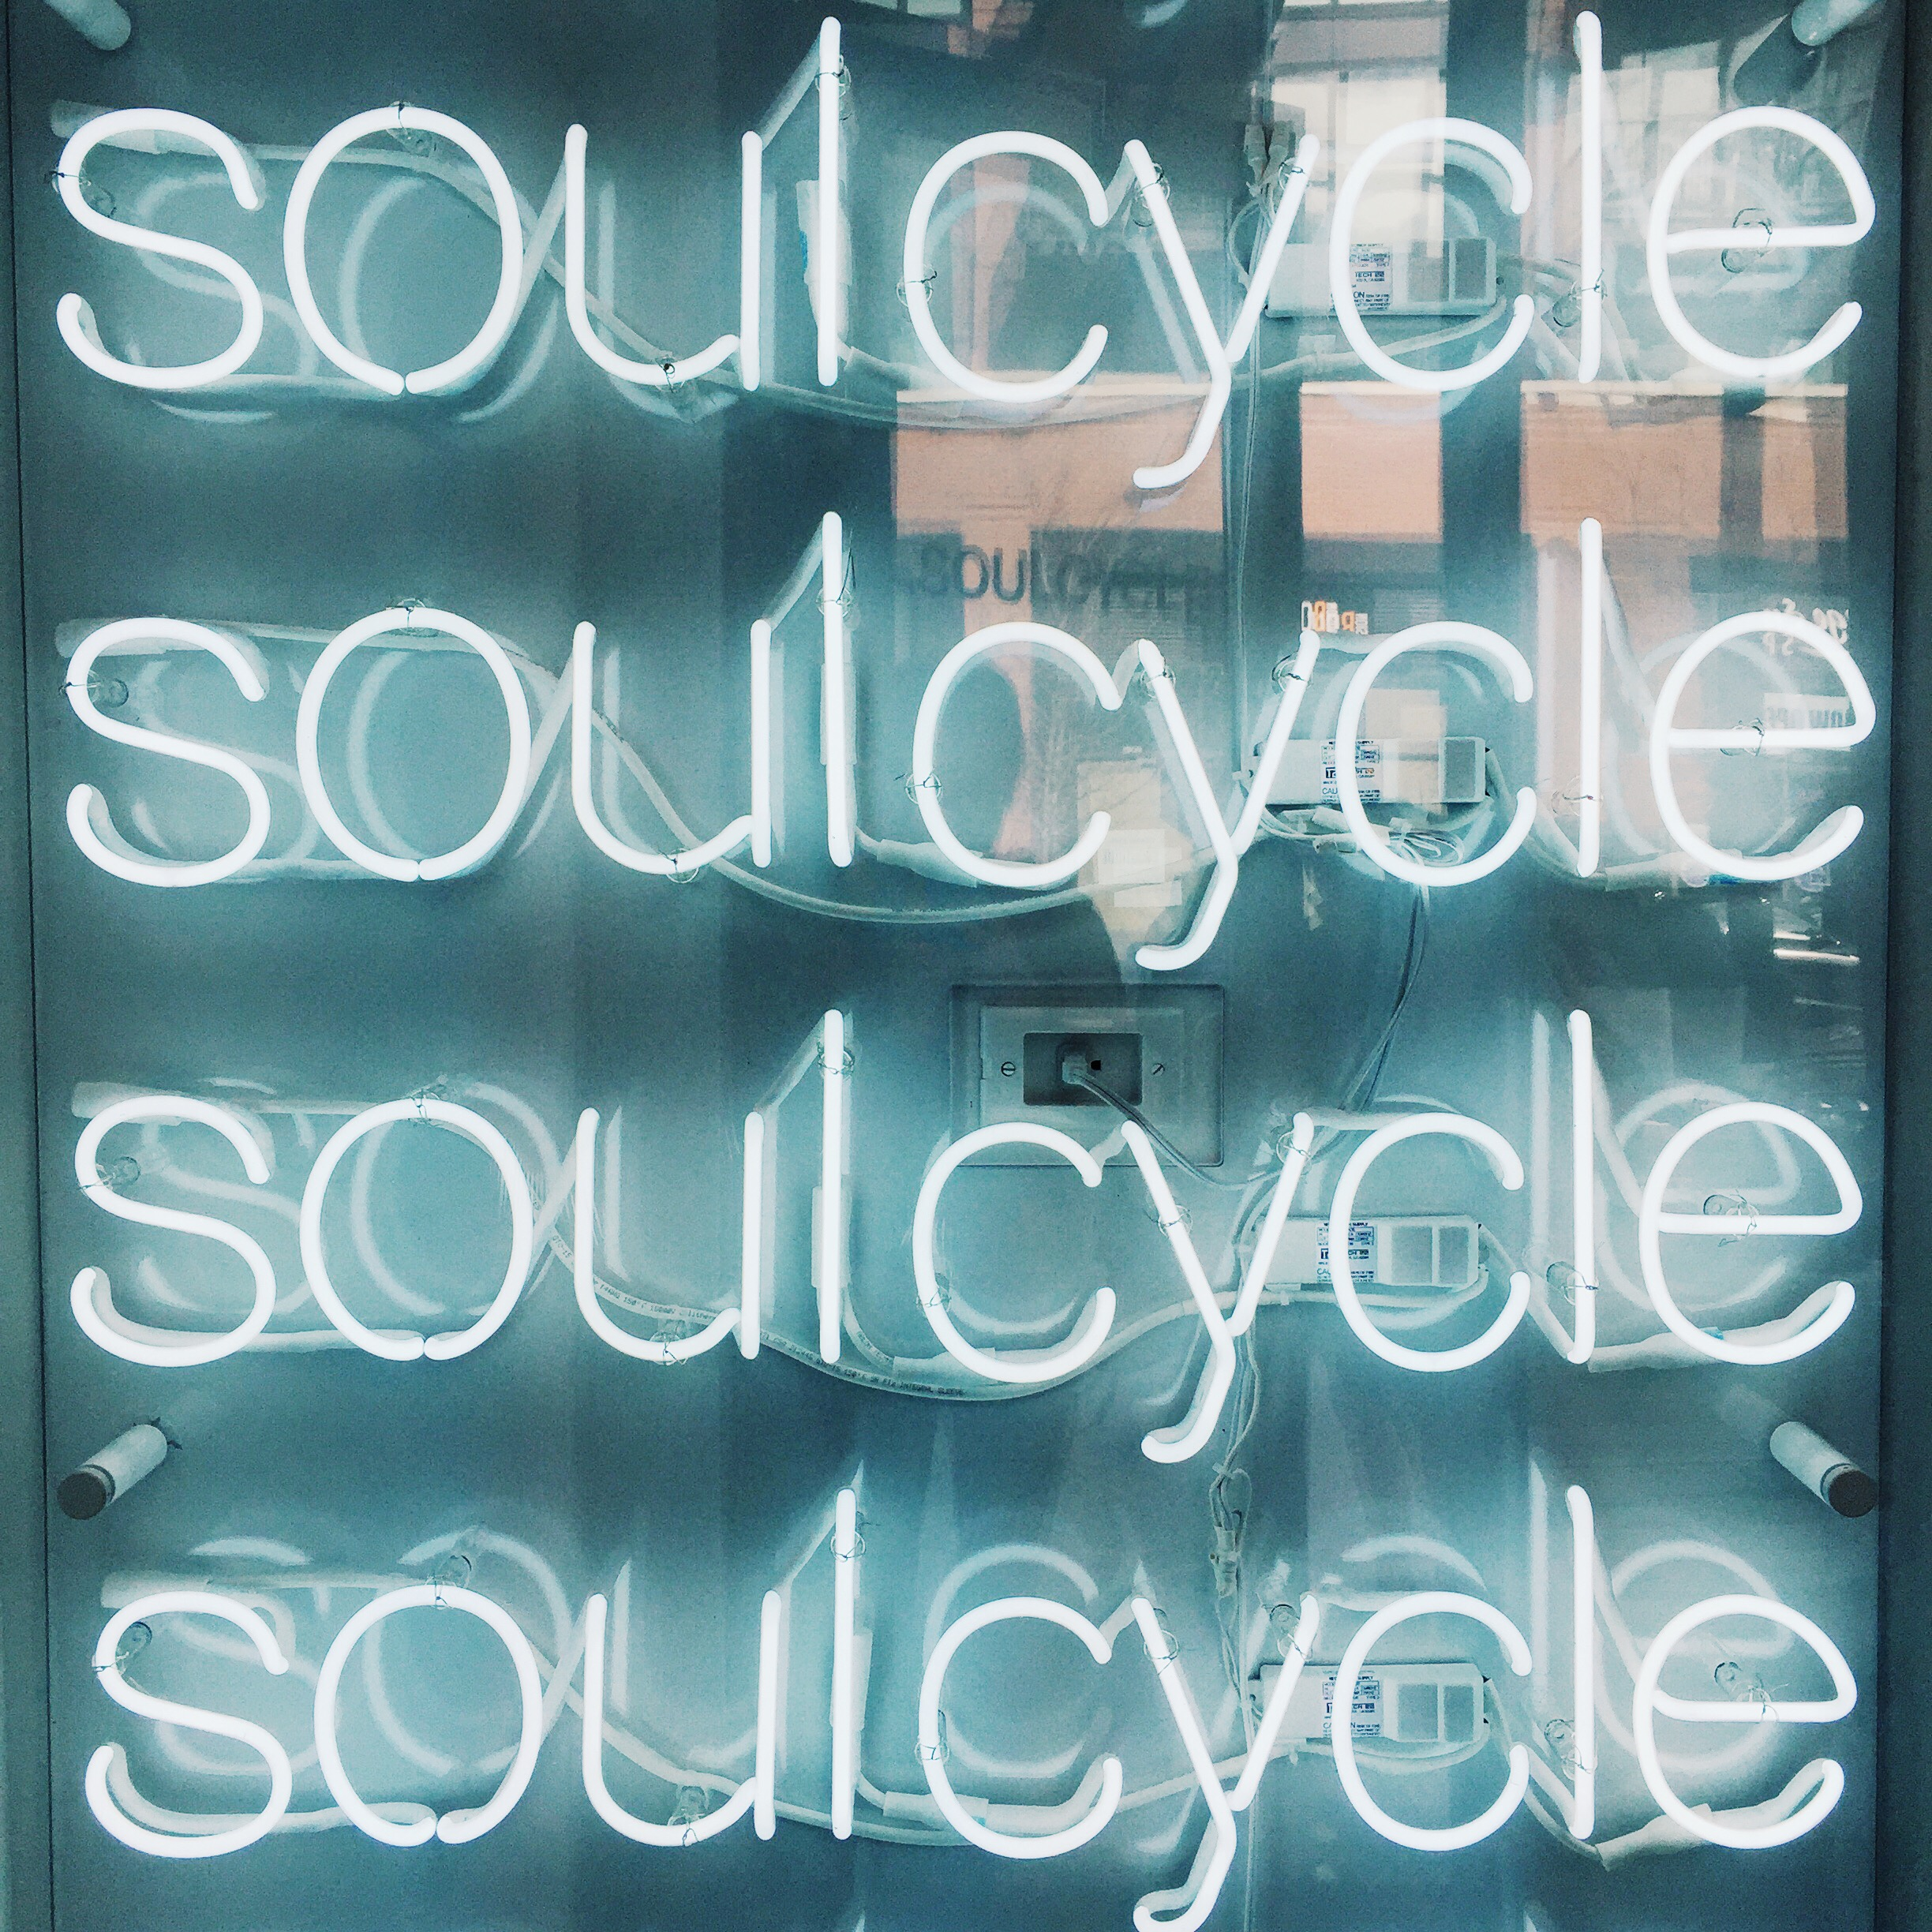 Soul Cycle Archives - Chickpea In The City | Chickpea in the City